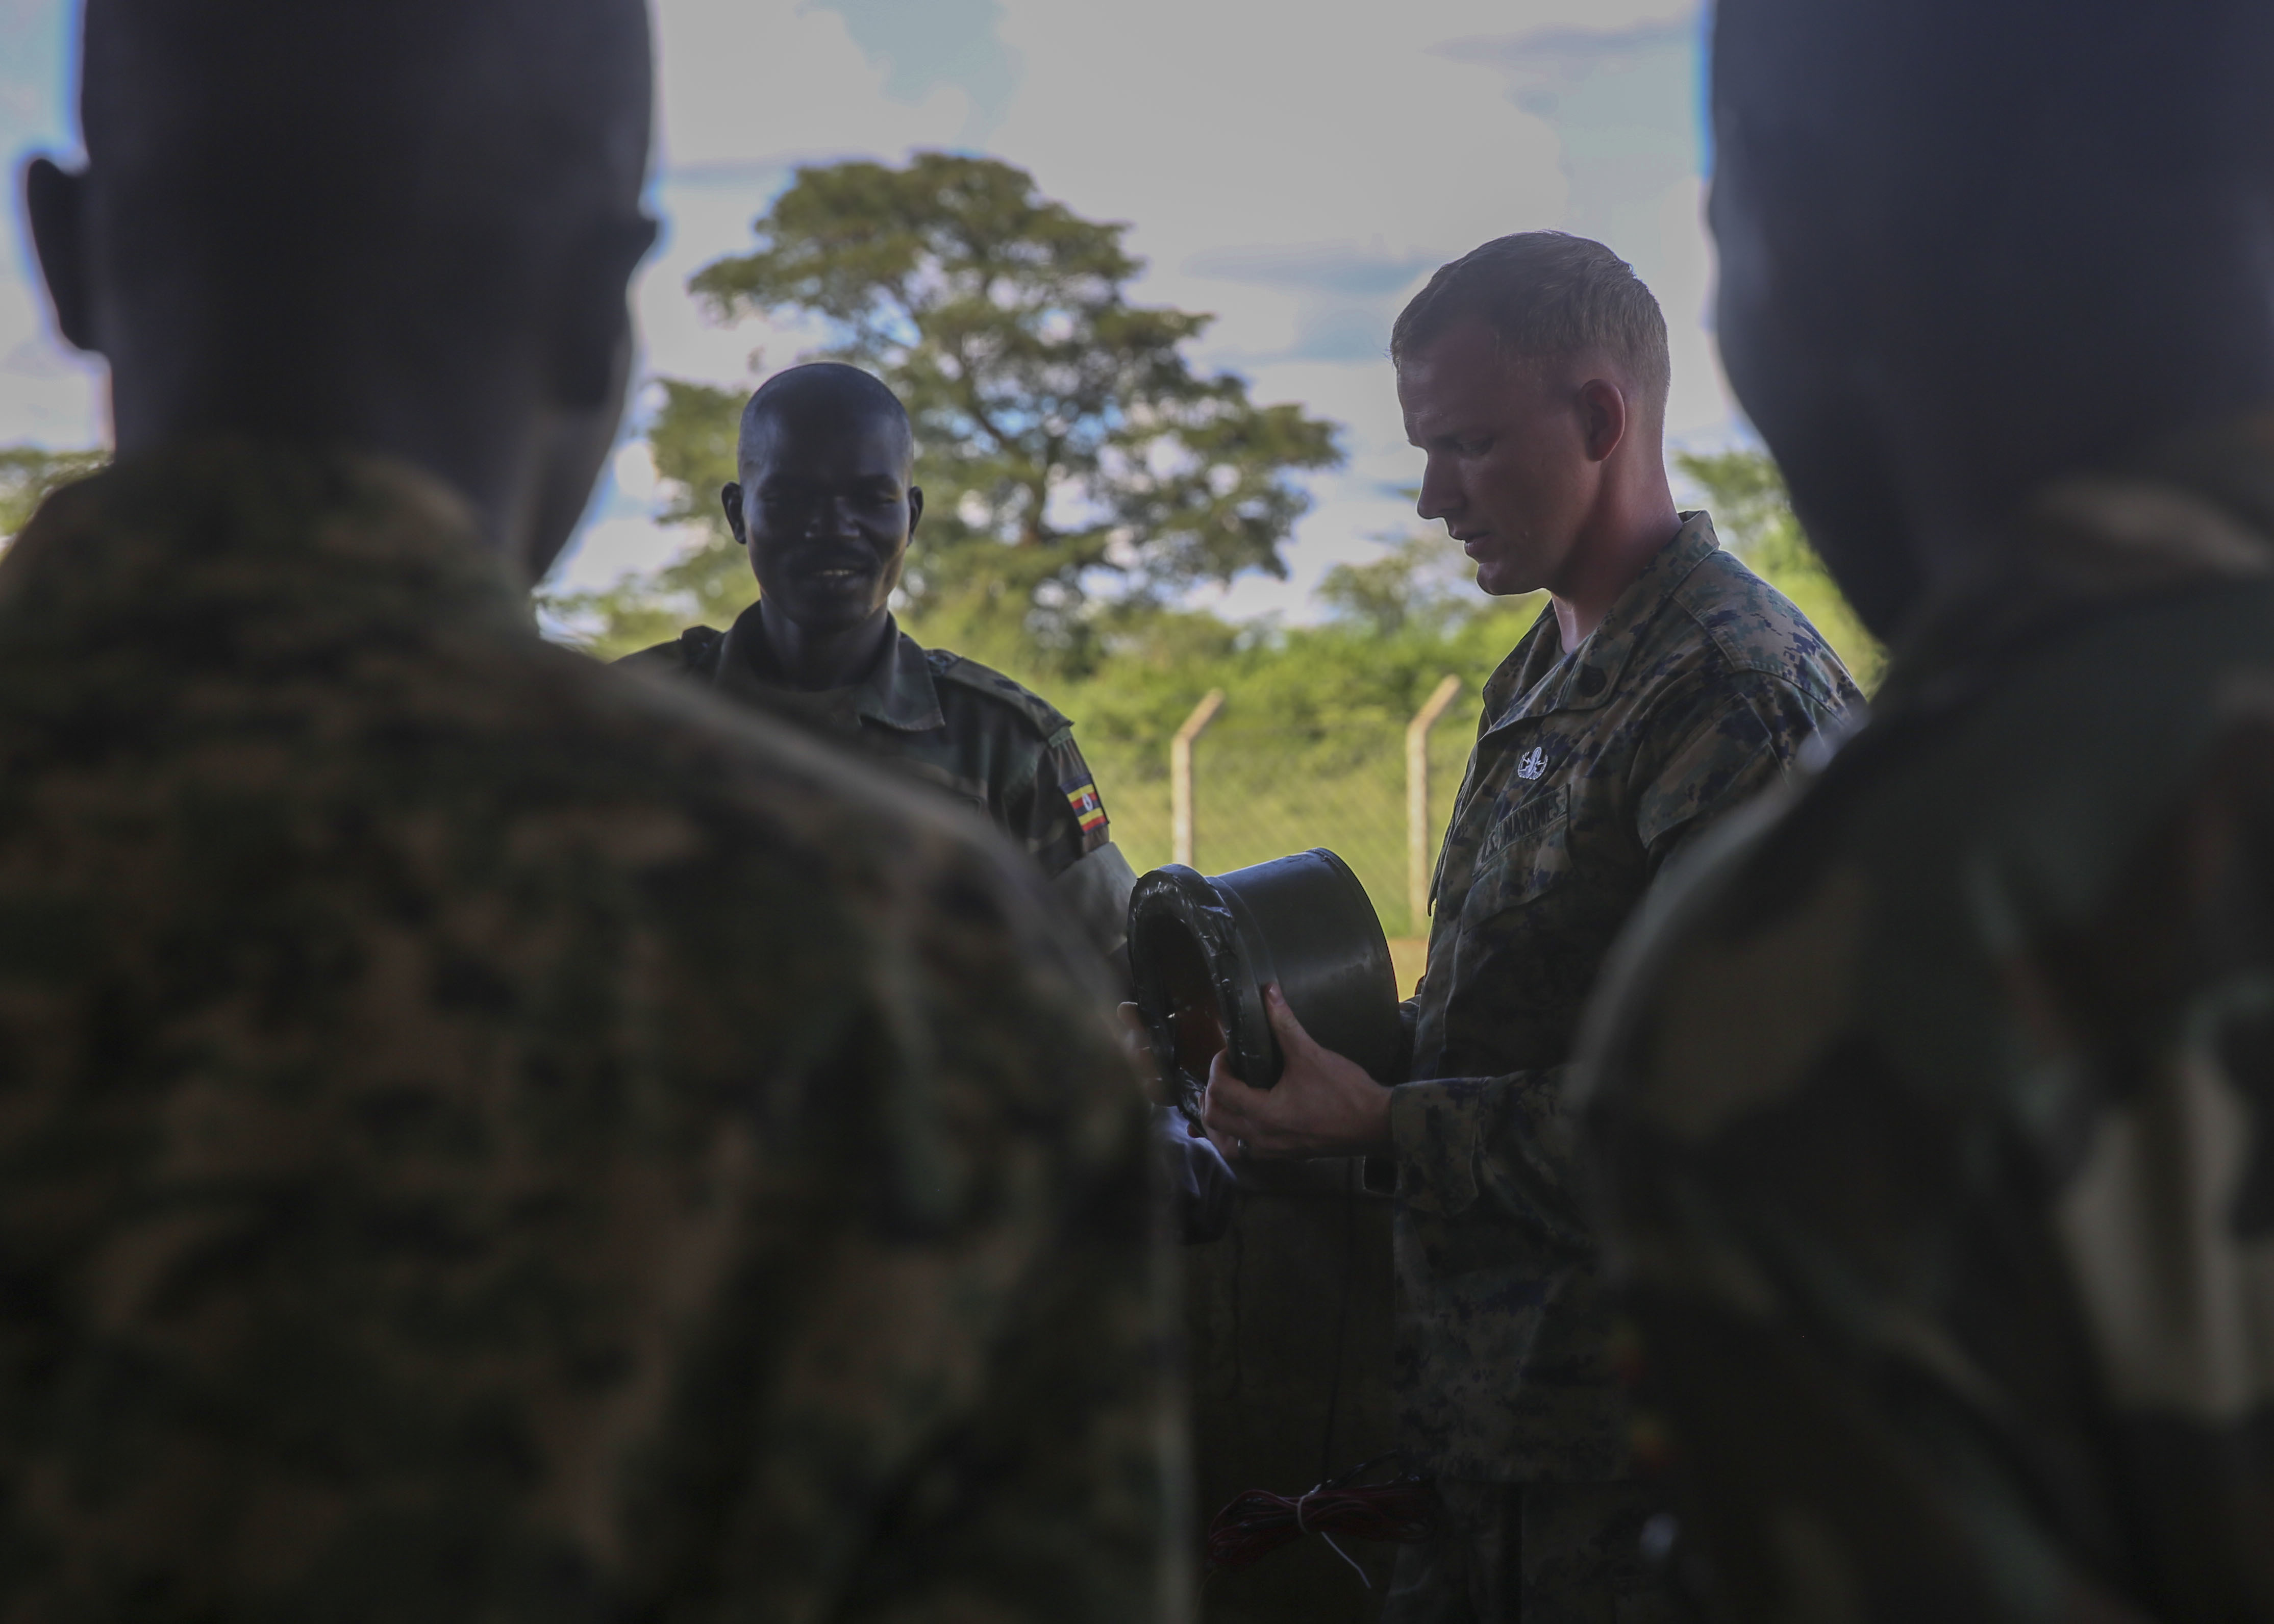 U.S. Marine Staff Sgt. Malachi McPherson, an explosive ordnance disposal technician with Special-Purpose Marine Air-Ground Task Force Crisis Response-Africa, shows some of the different types of improvised explosive devices to members of the Uganda People's Defense Force during an IED awareness class at Camp Singo, Uganda, Nov. 2, 2015. Marines and sailors with SPMAGTF-CR-AF are training with the UPDF to increase engineering and logistical capabilities while strengthening the bonds between the partner counties. (U.S. Marine Corps photo by Cpl. Olivia McDonald/Released)